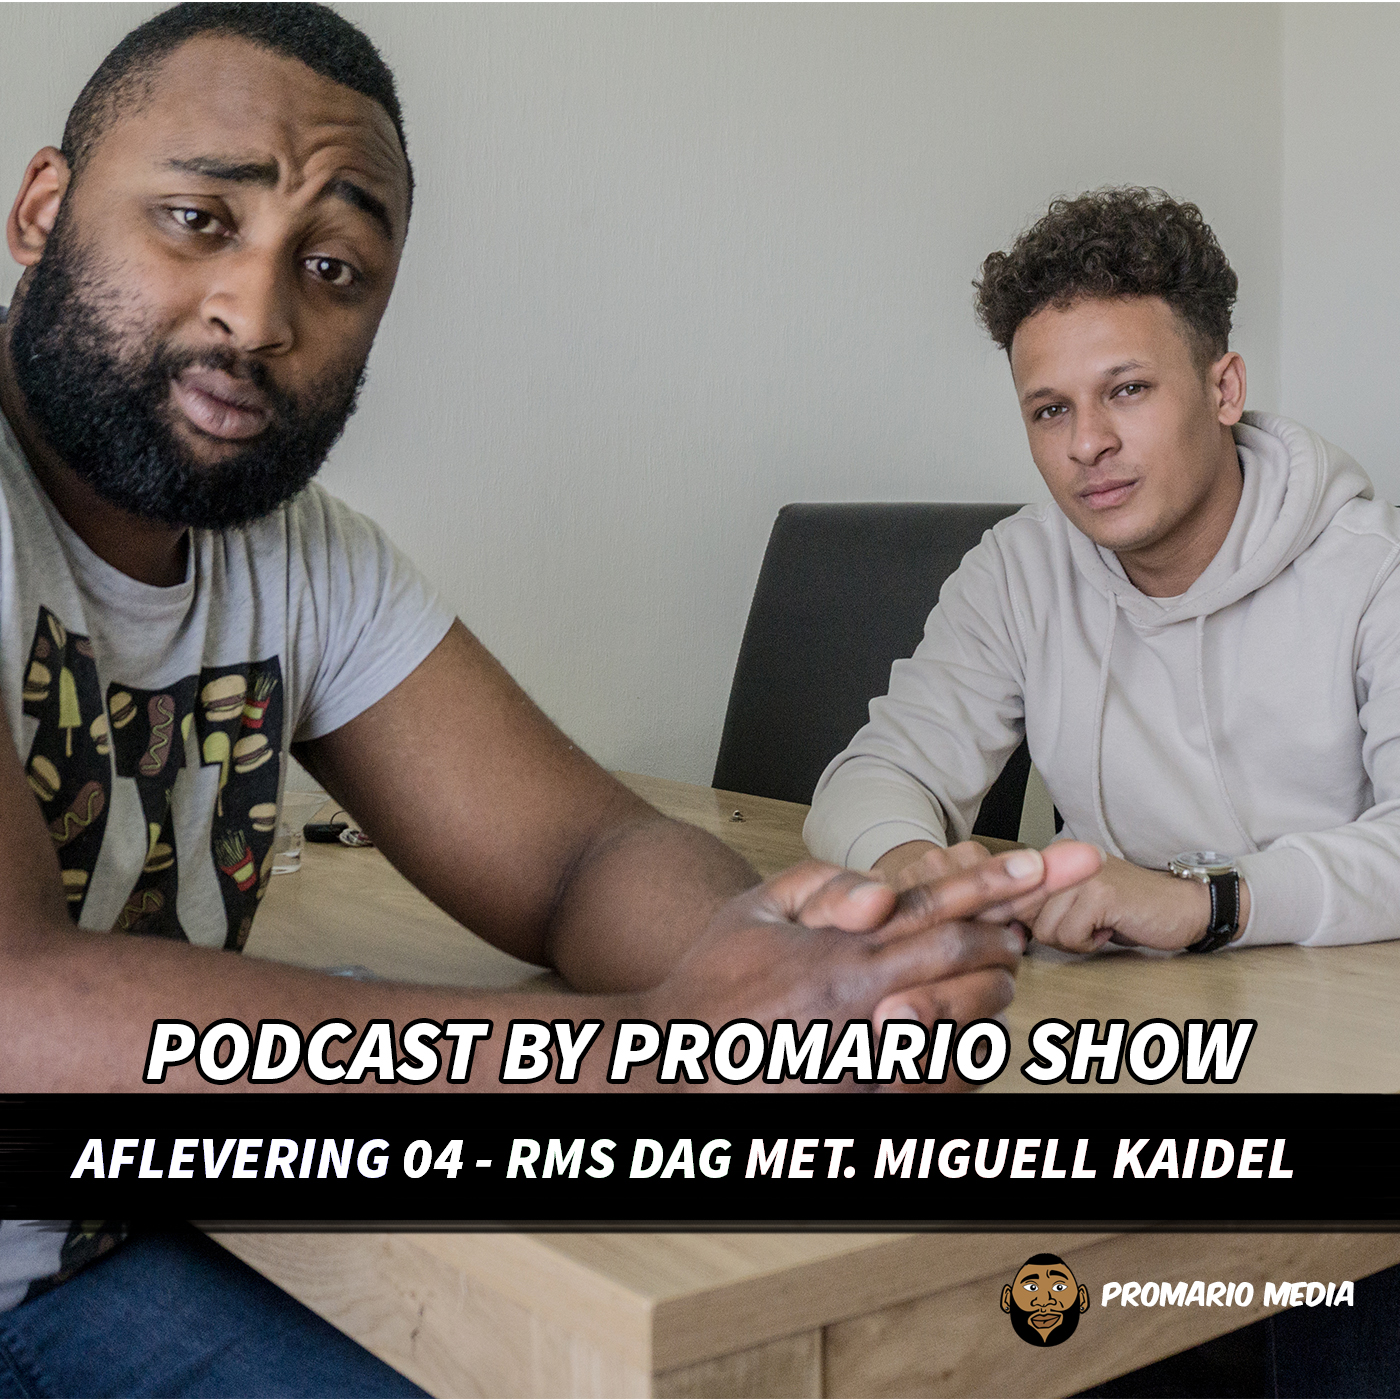 PODCAST BY PROMARIO AFLEVERING 4 MET MIGUELL KAIDEL